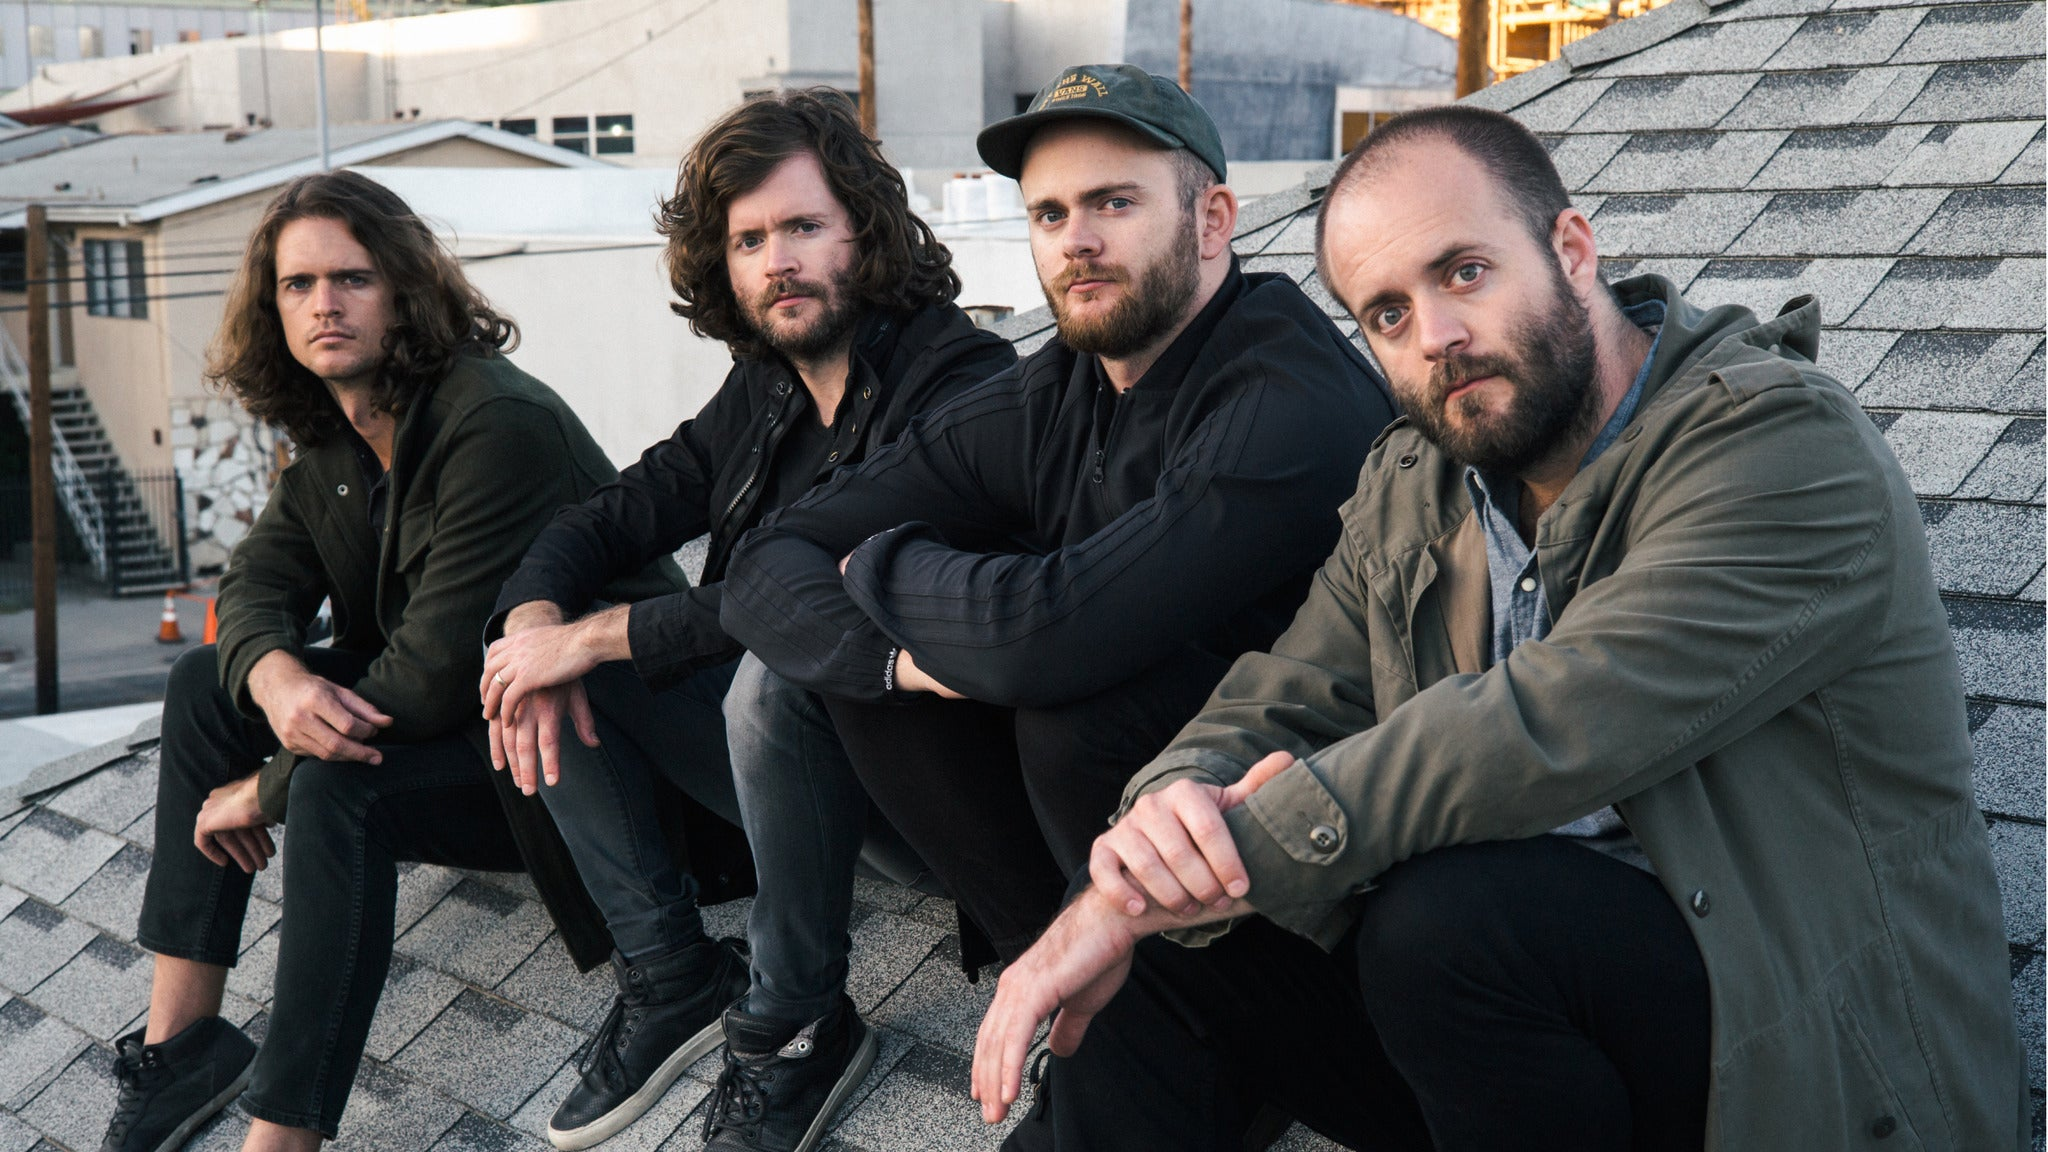 Kongos at Fine Line Music Cafe - Minneapolis, MN 55401